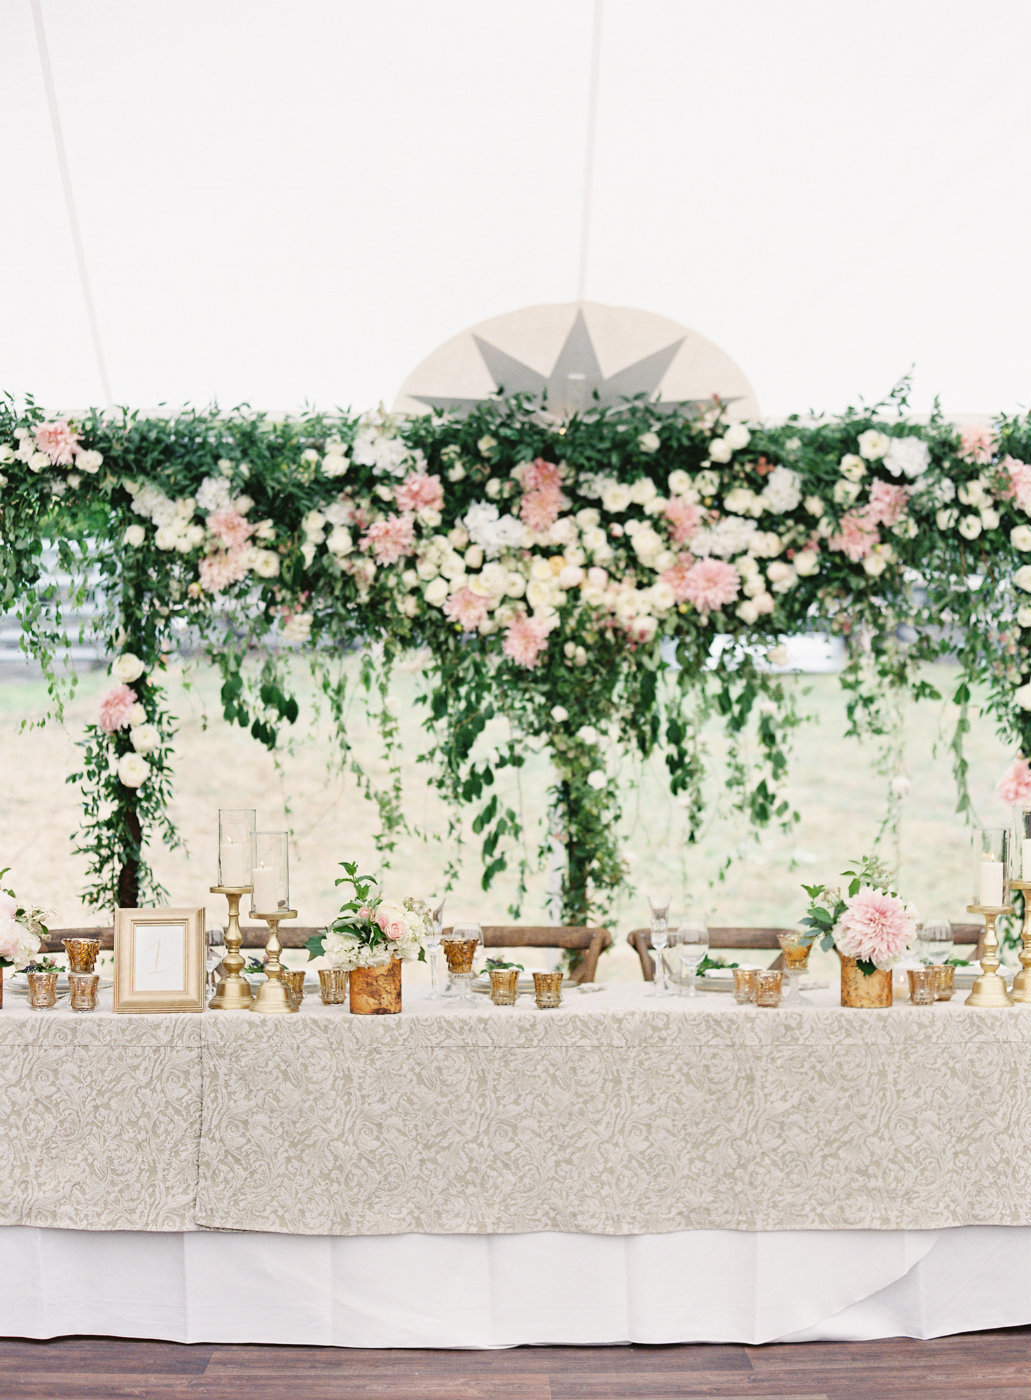 Blush and greenery flower wall backdrop at summer tent wedding reception.